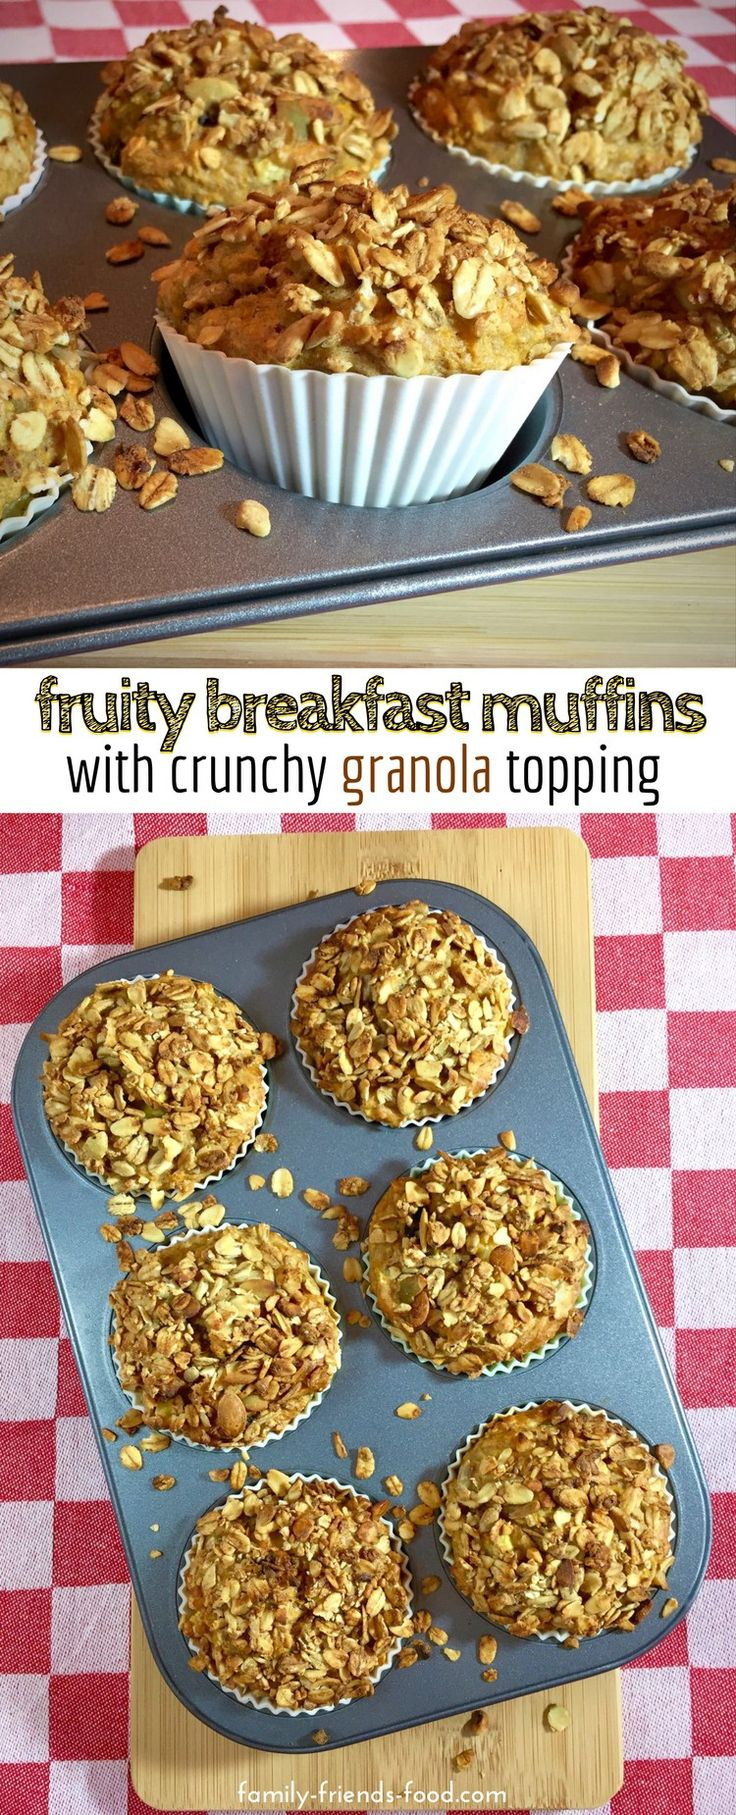 Packed with fruit & veg, these deliciously moist breakfast muffins are low in fat and contain no added sugar. A perfectly healthy start to the day! #breakfast #baking #muffins #healthy